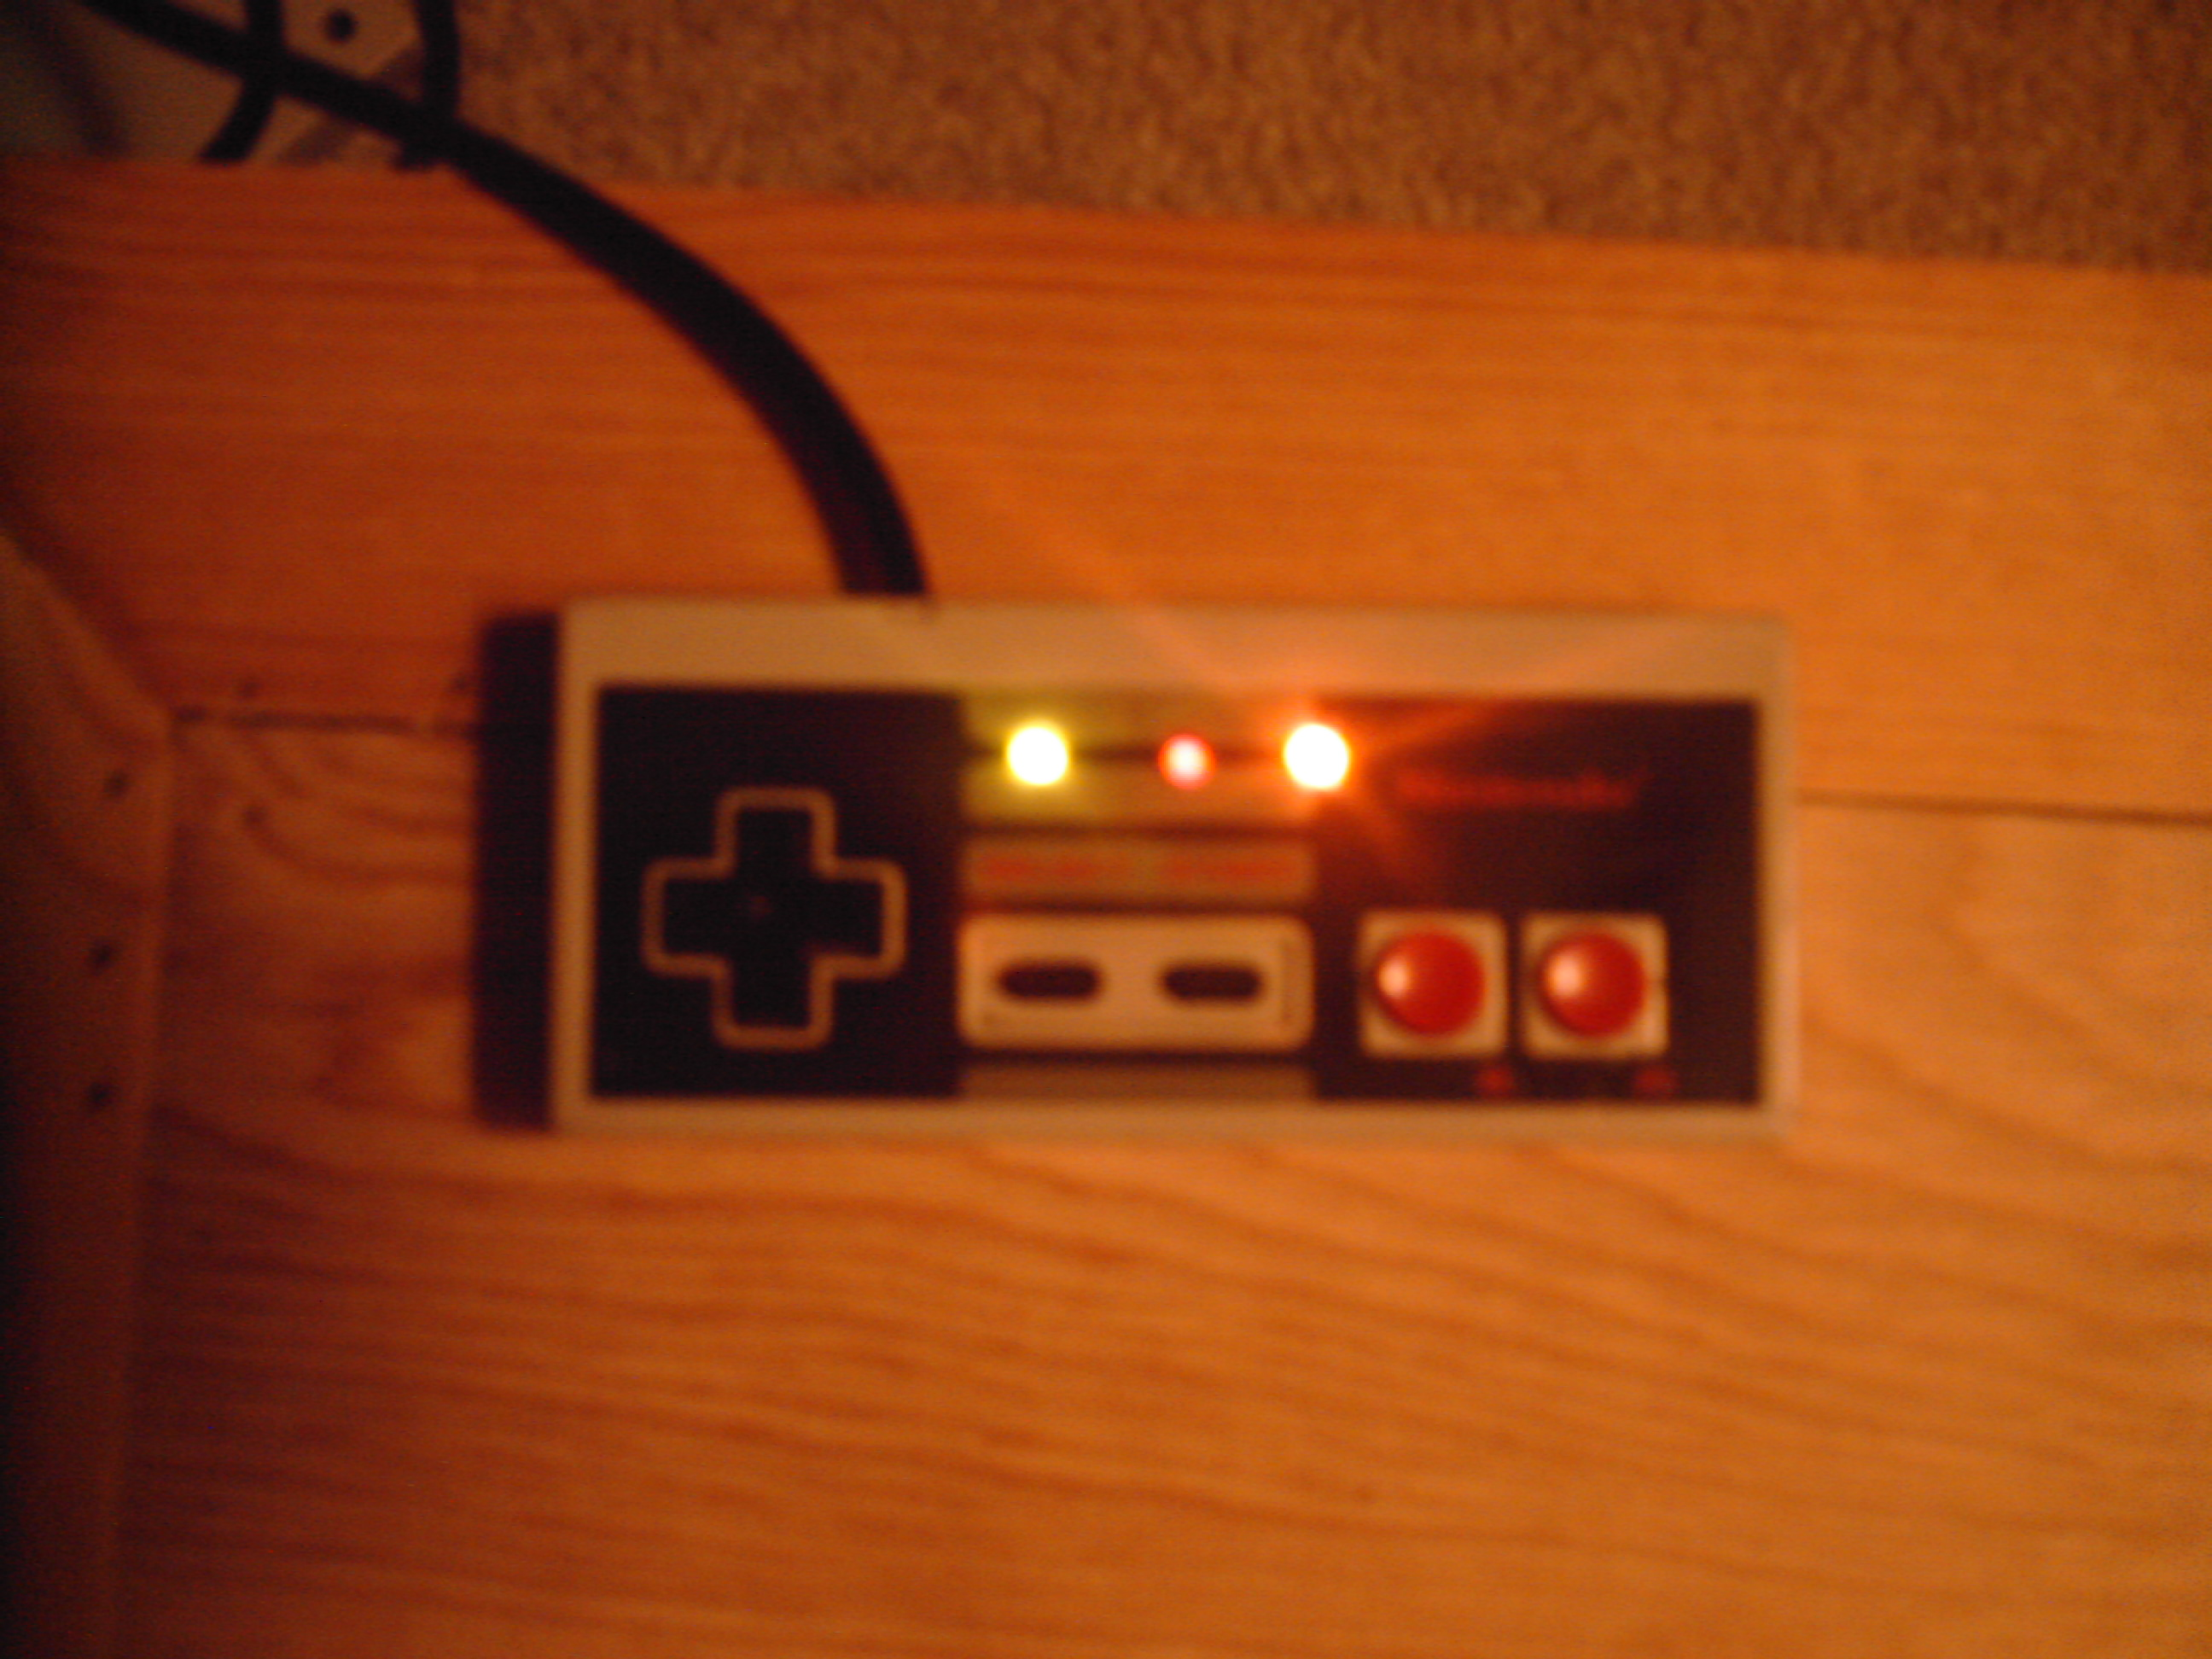 add Leds to a Nes controller